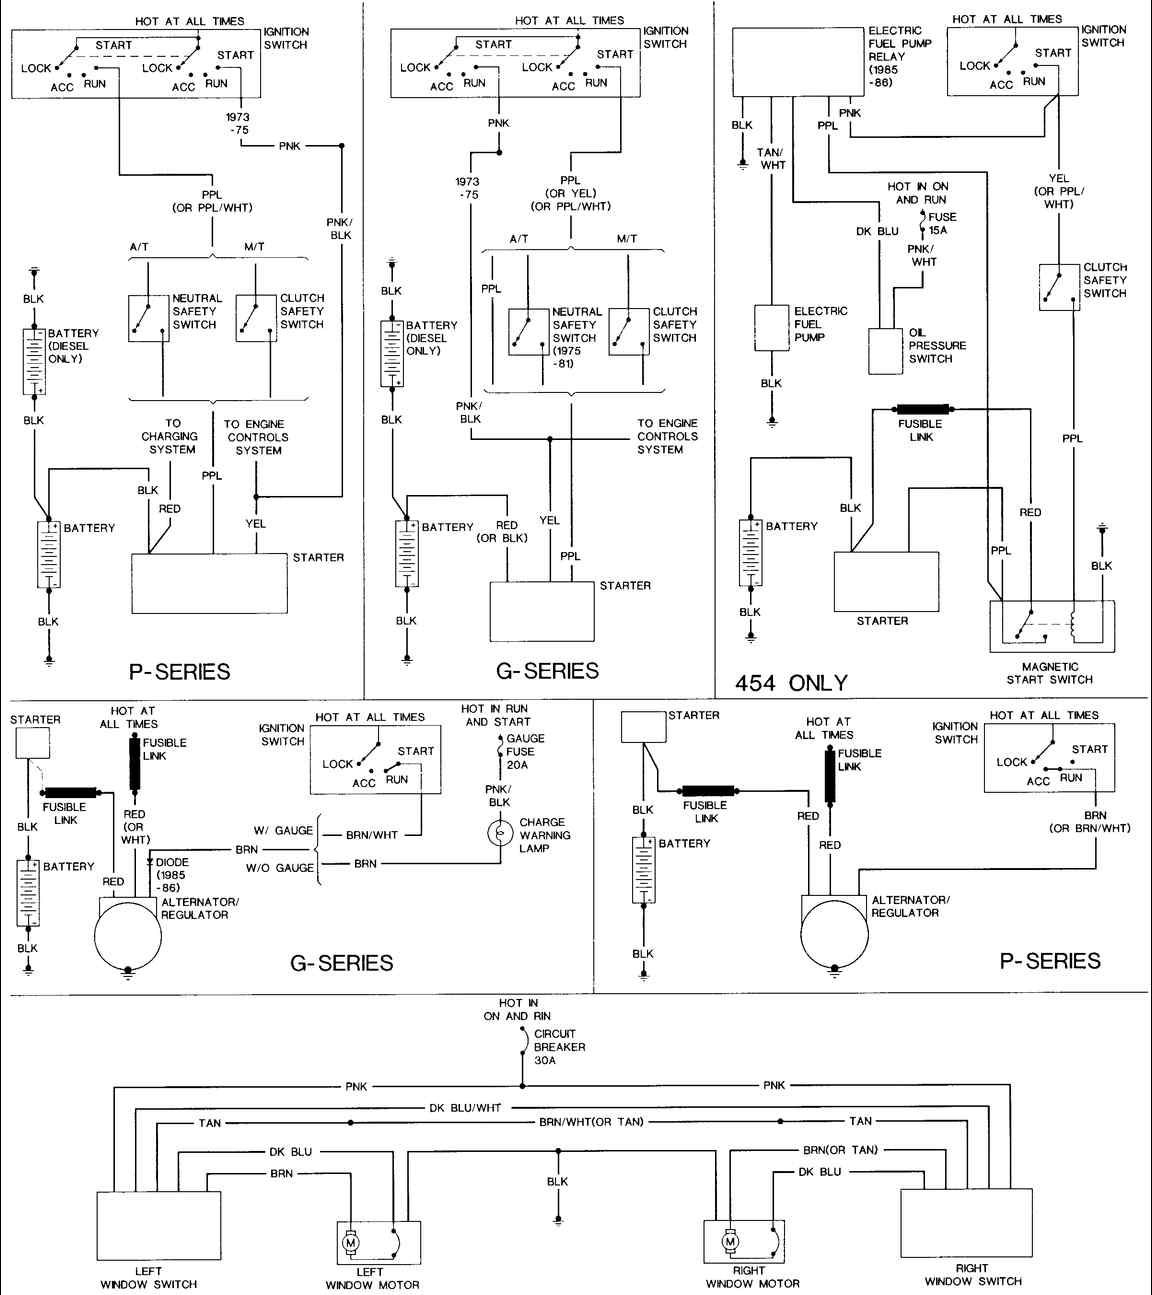 0c73623a181dc376dbb4777e2029d285 85 chevy truck wiring diagram 85 chevy van the steering column 1980 Chevy Camaro at gsmportal.co